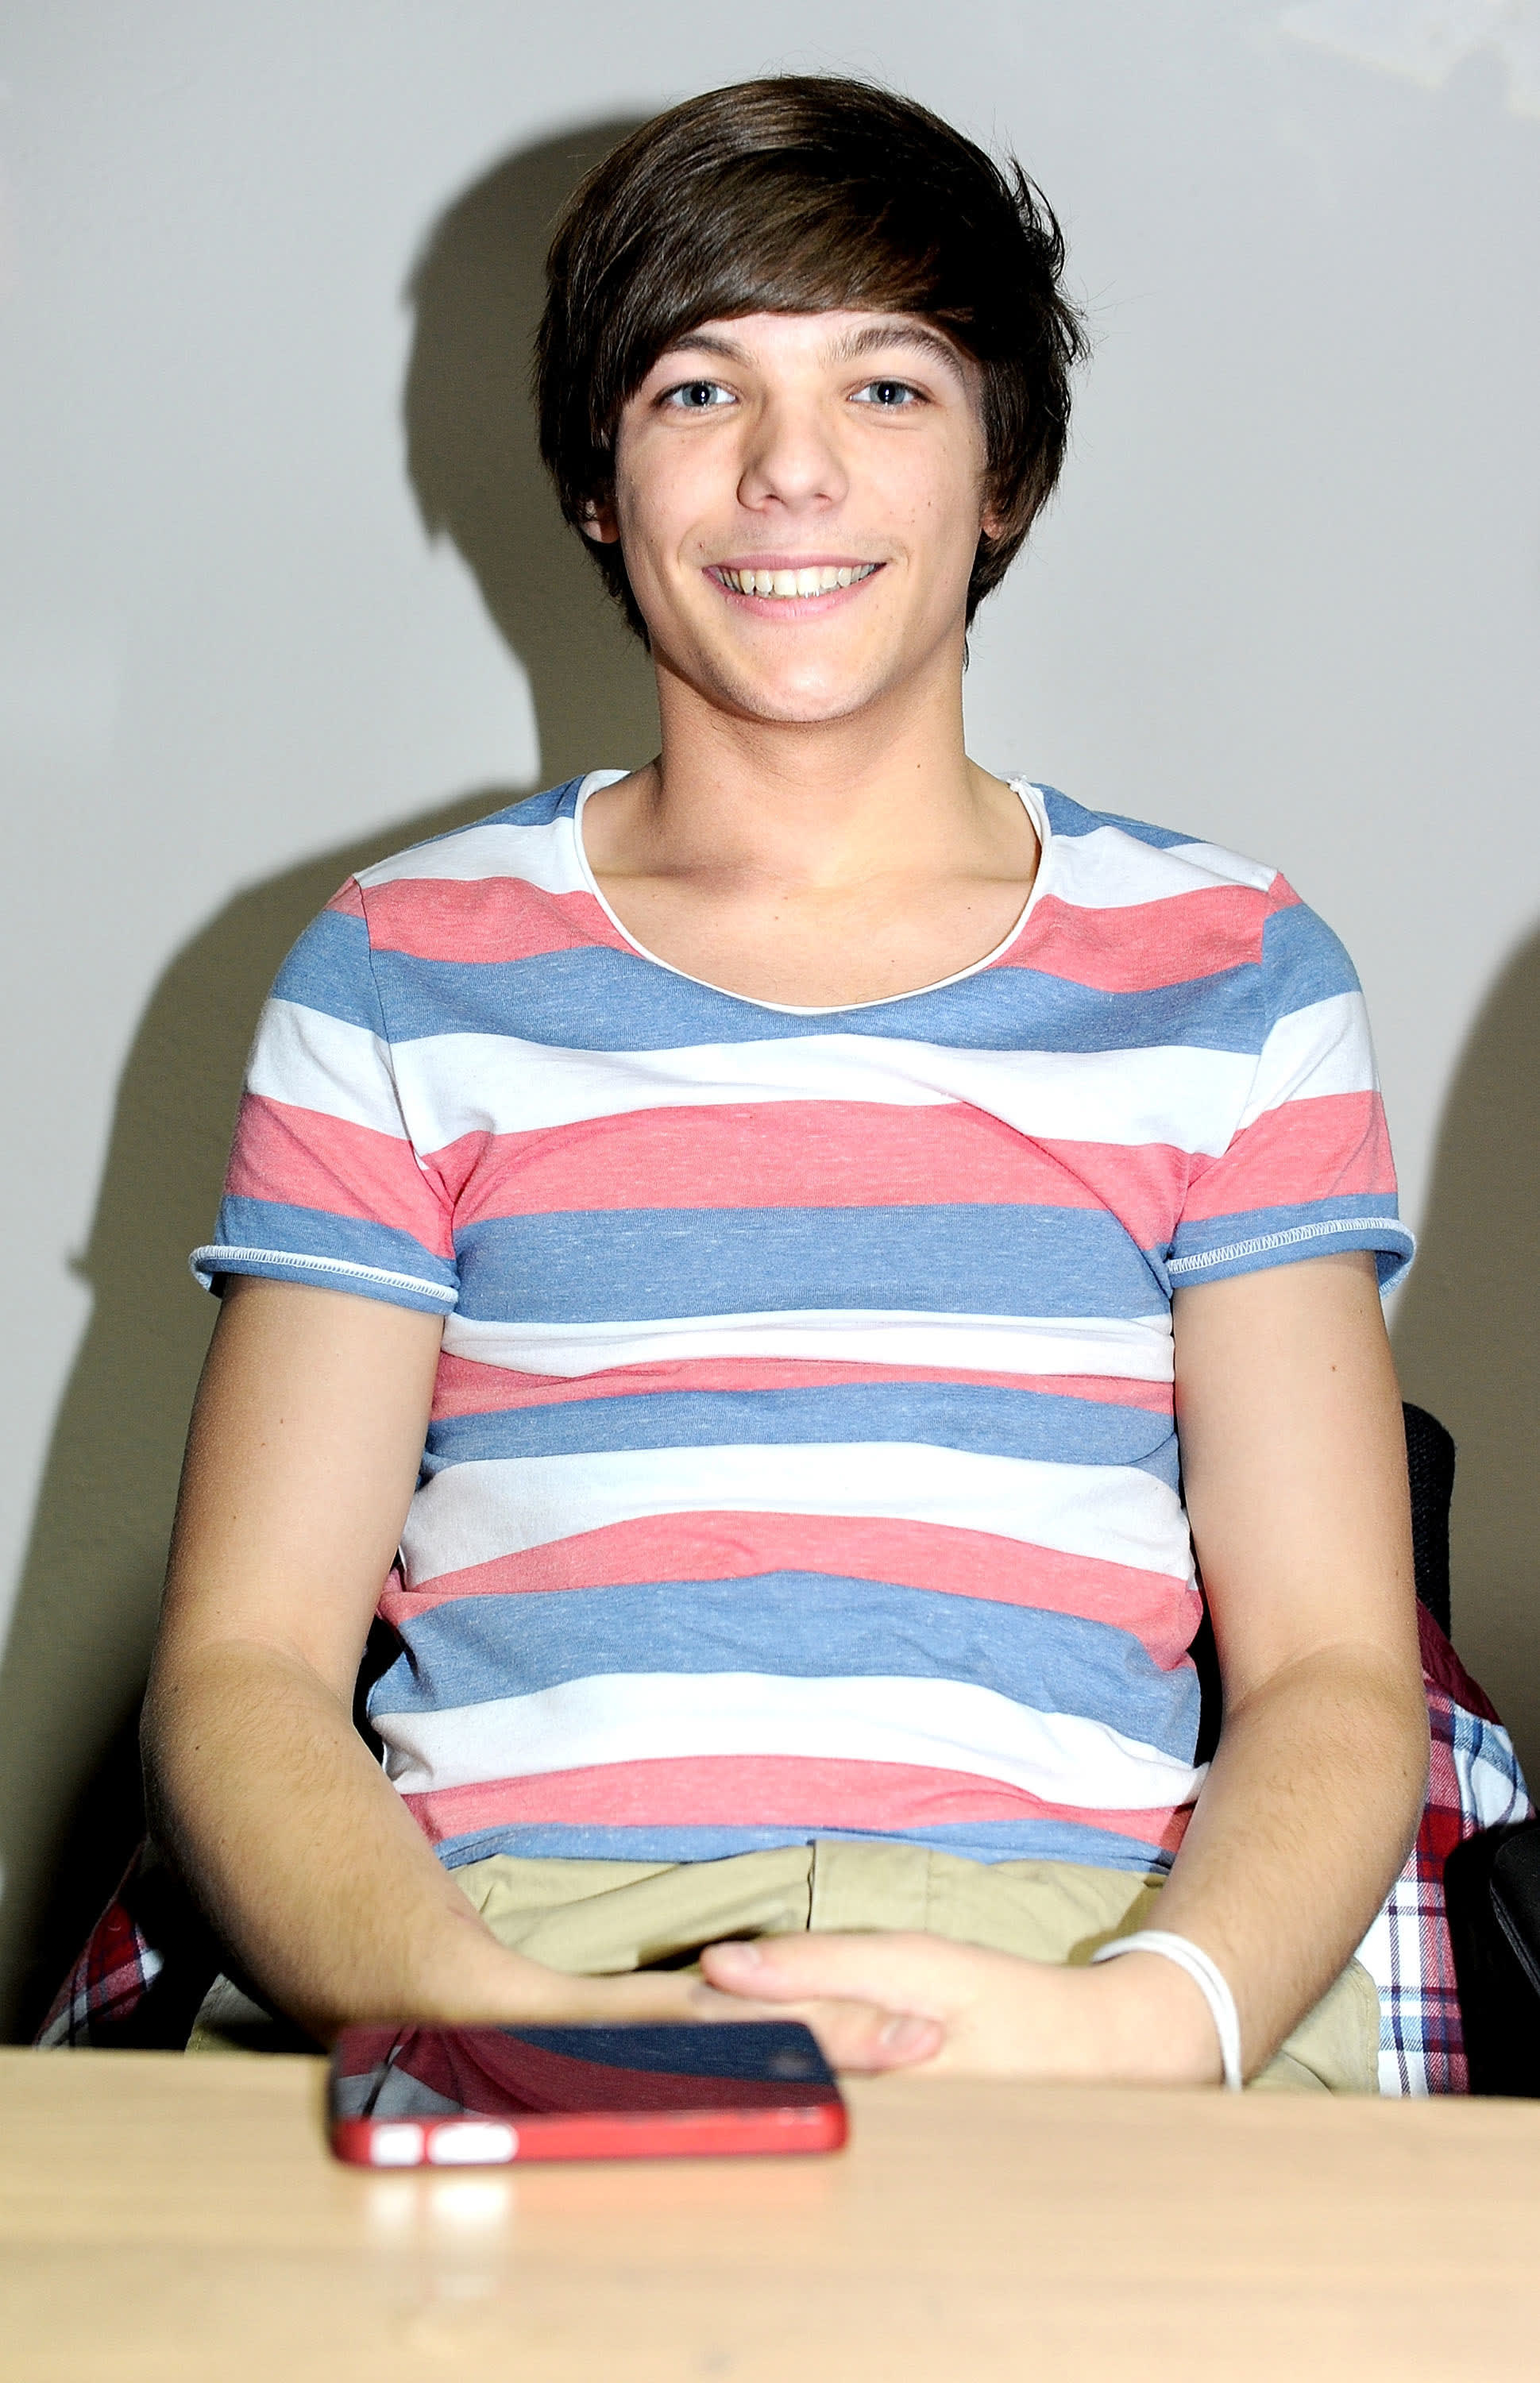 Tomlinson at a One Direction book signing in 2011